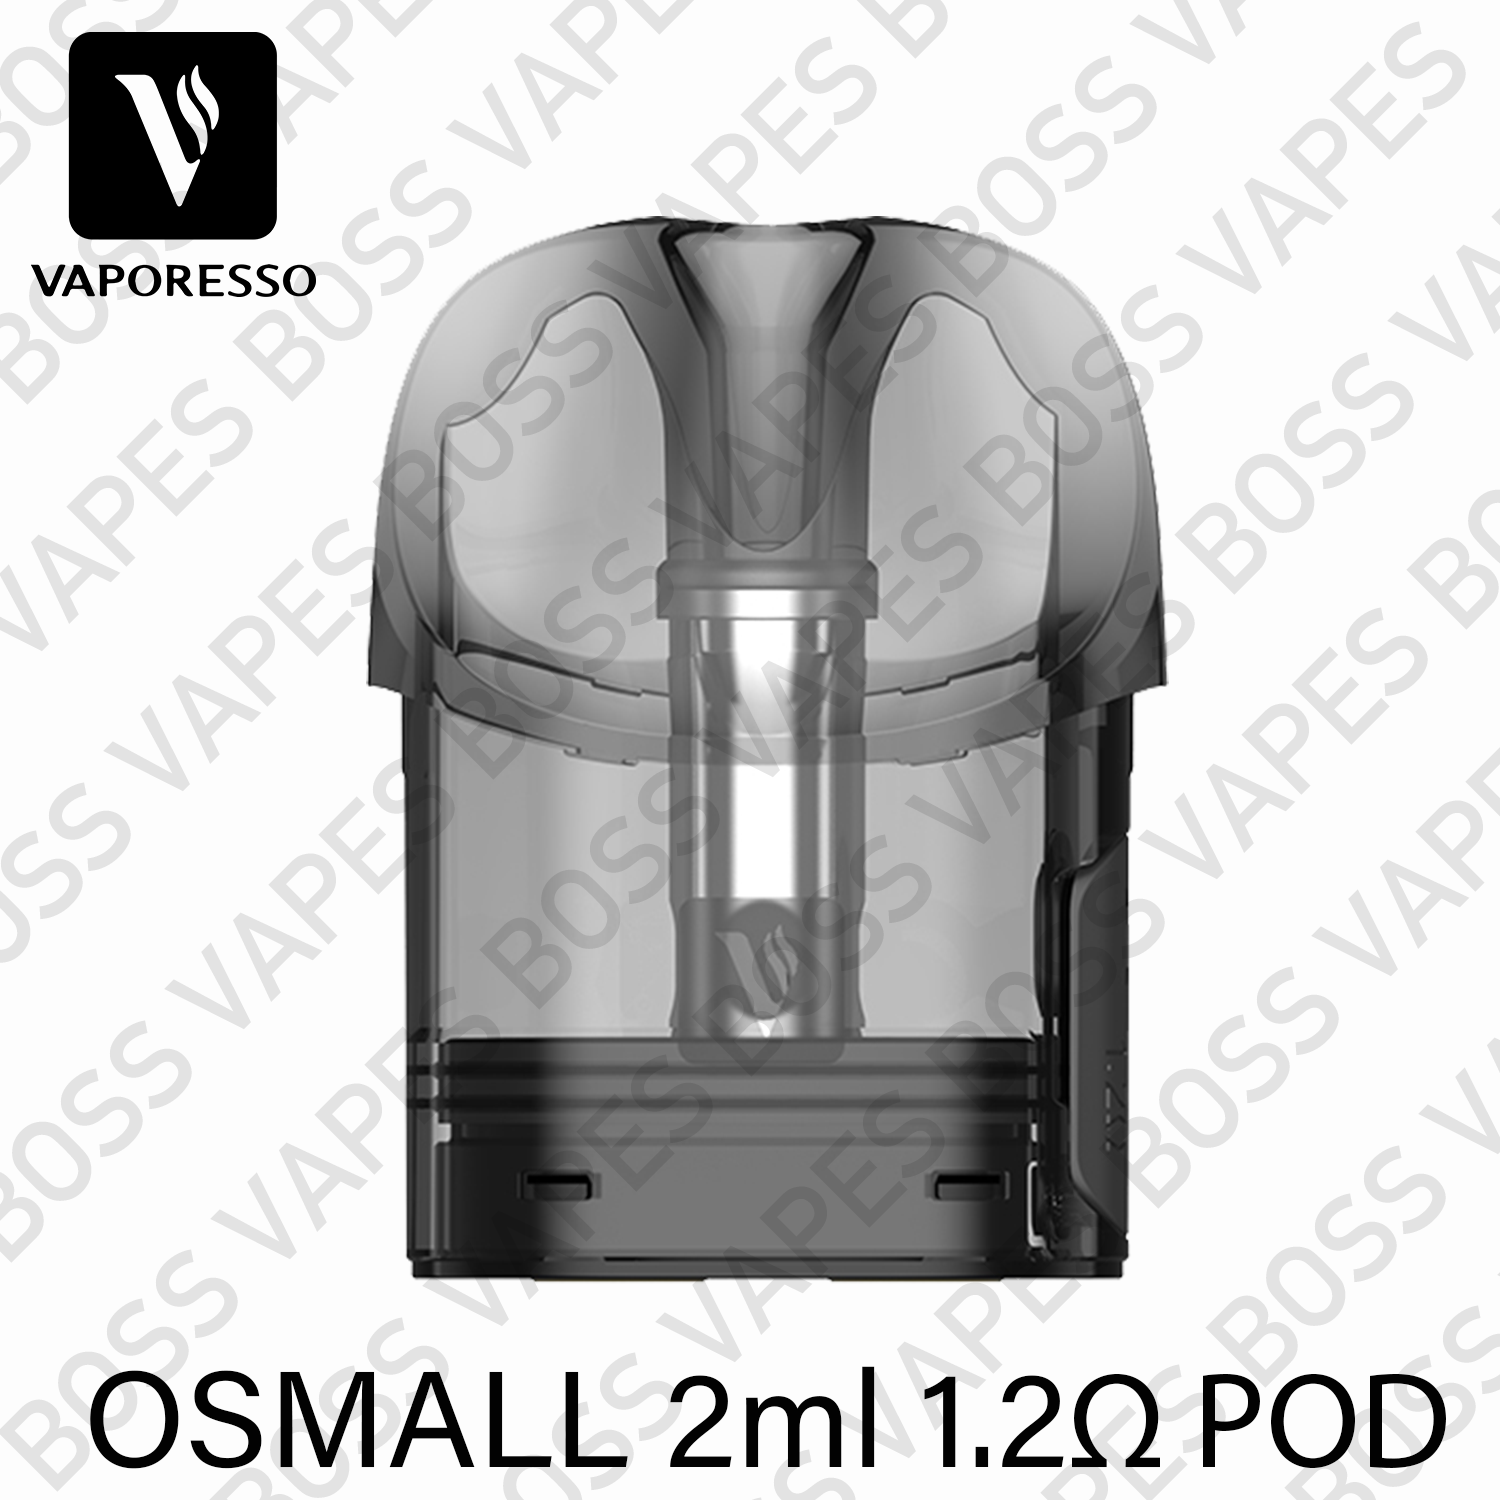 VAPORESSO OSMALL REPLACEMENT POD (Priced Individually) - Boss Vapes